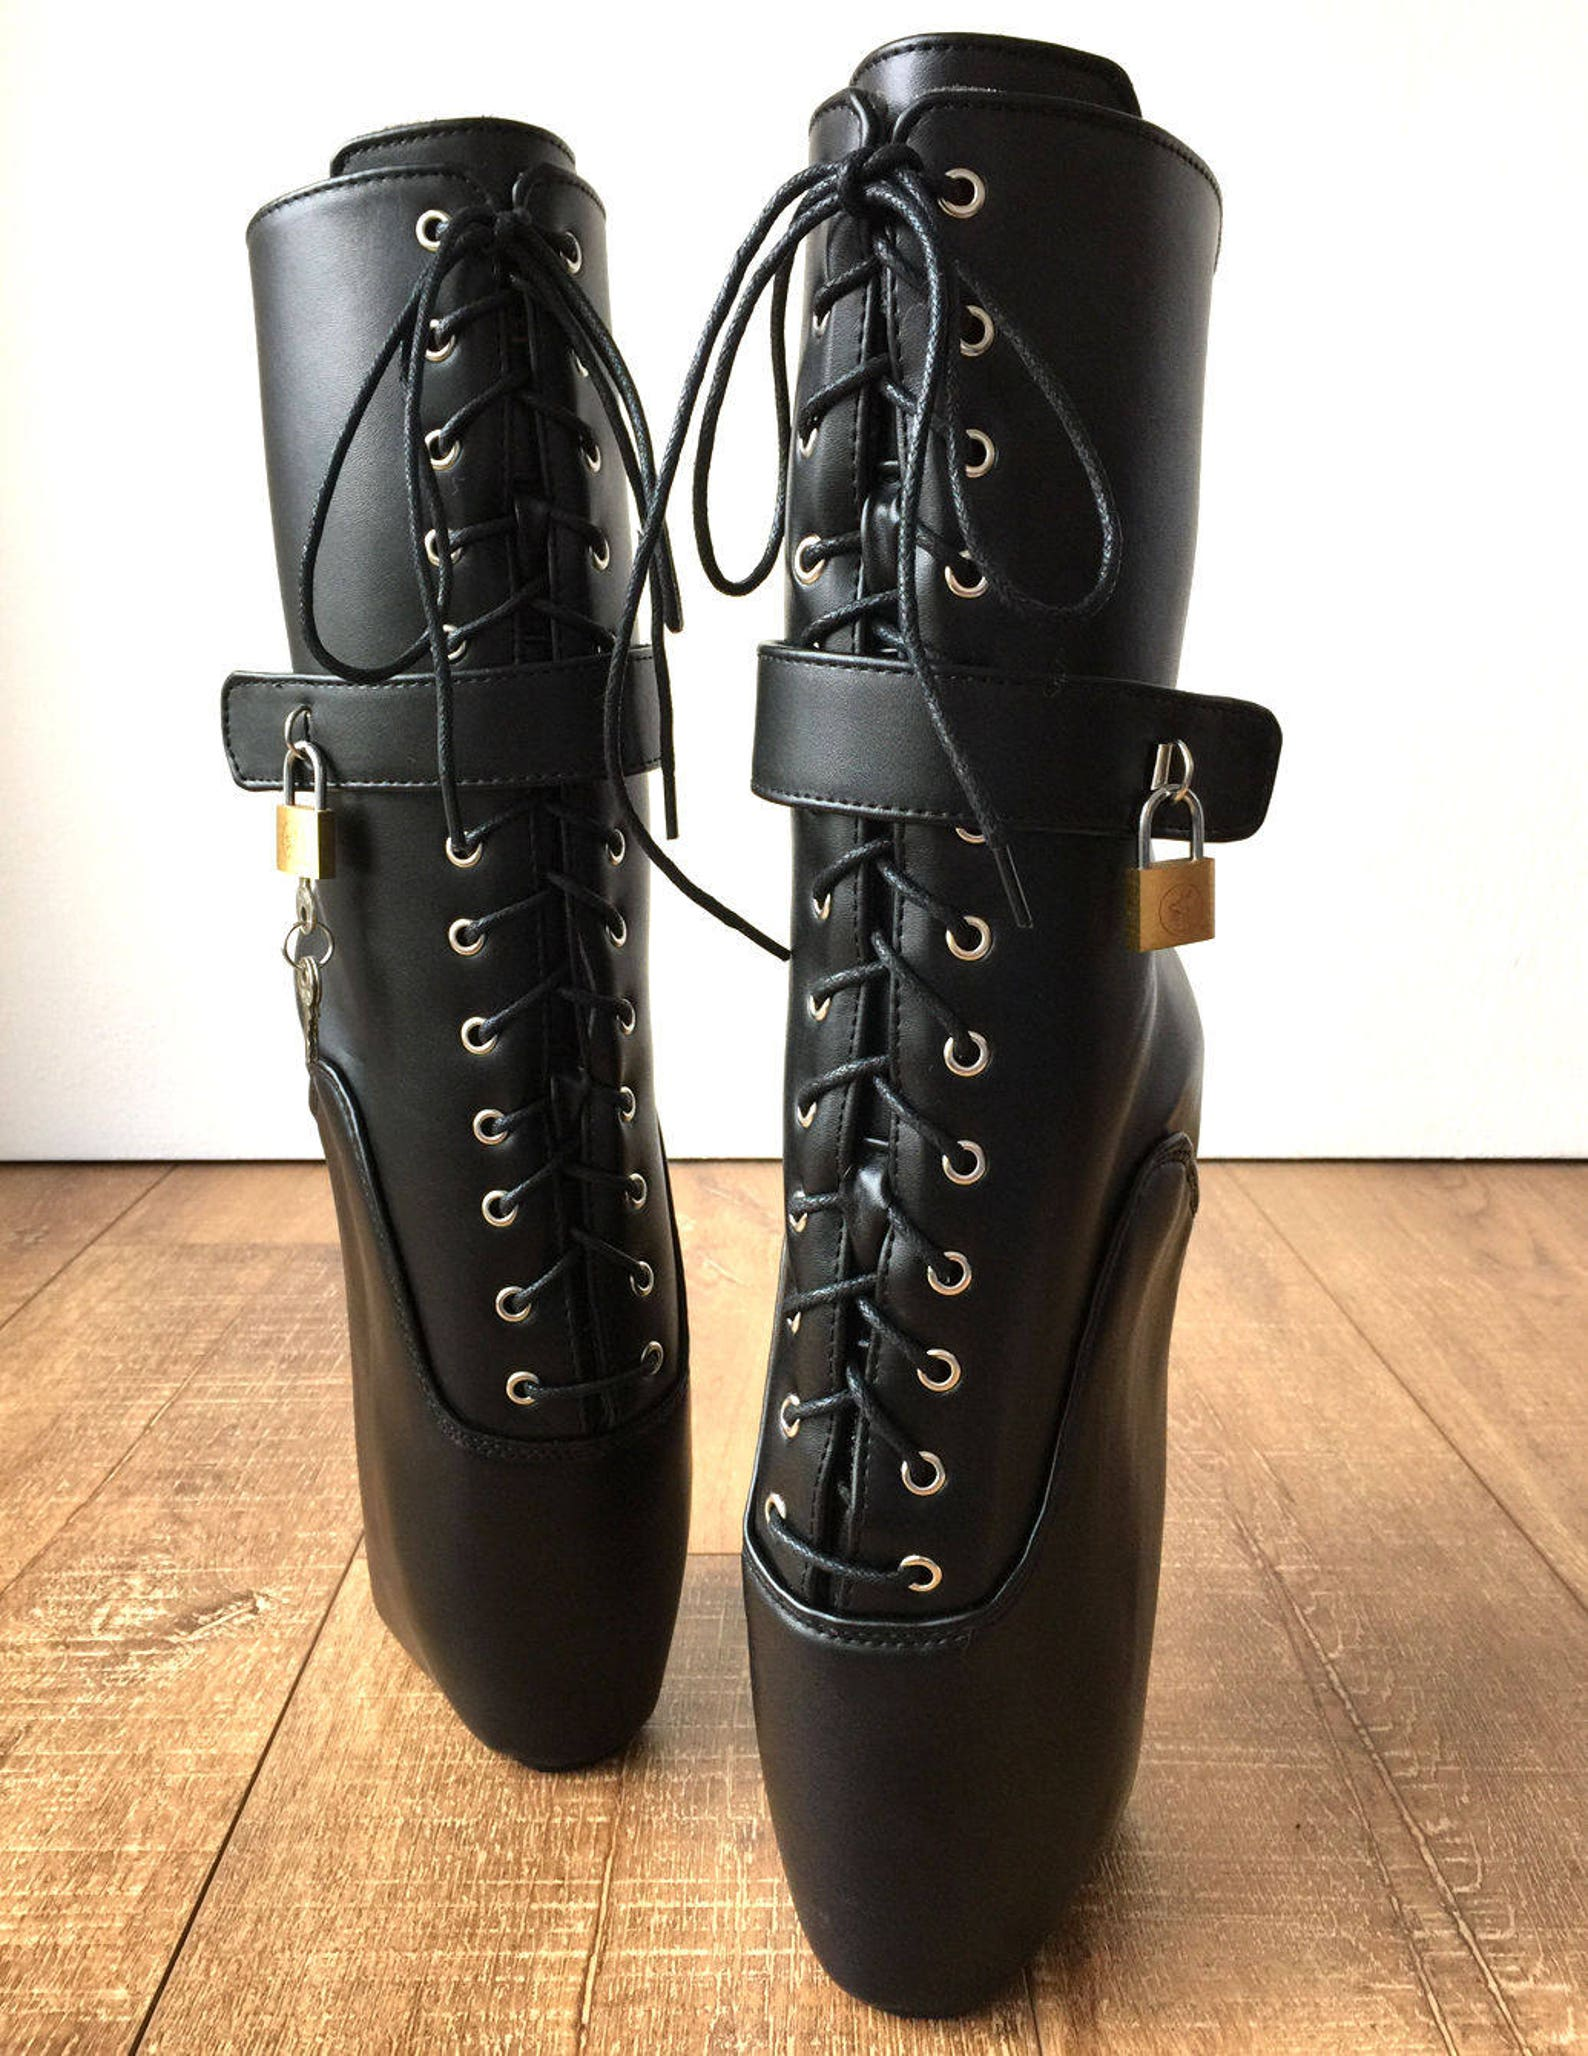 18cm locky beginner lockable ballet wedge boots hoof sole heelless fetish pinup